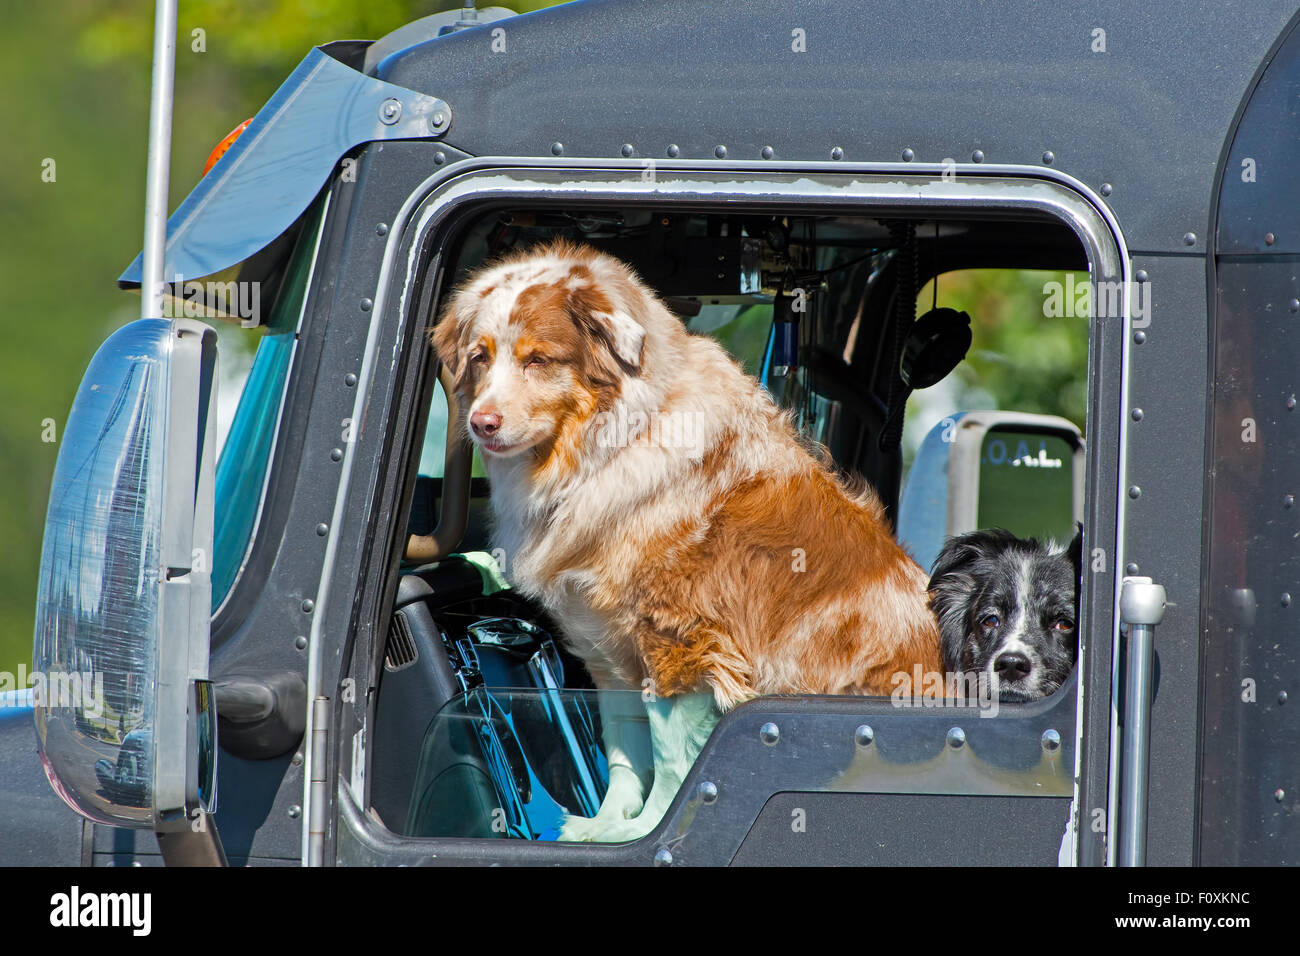 Dog Sitting In A Parked Tractor Trailer Stock Photo 86638088 Alamy